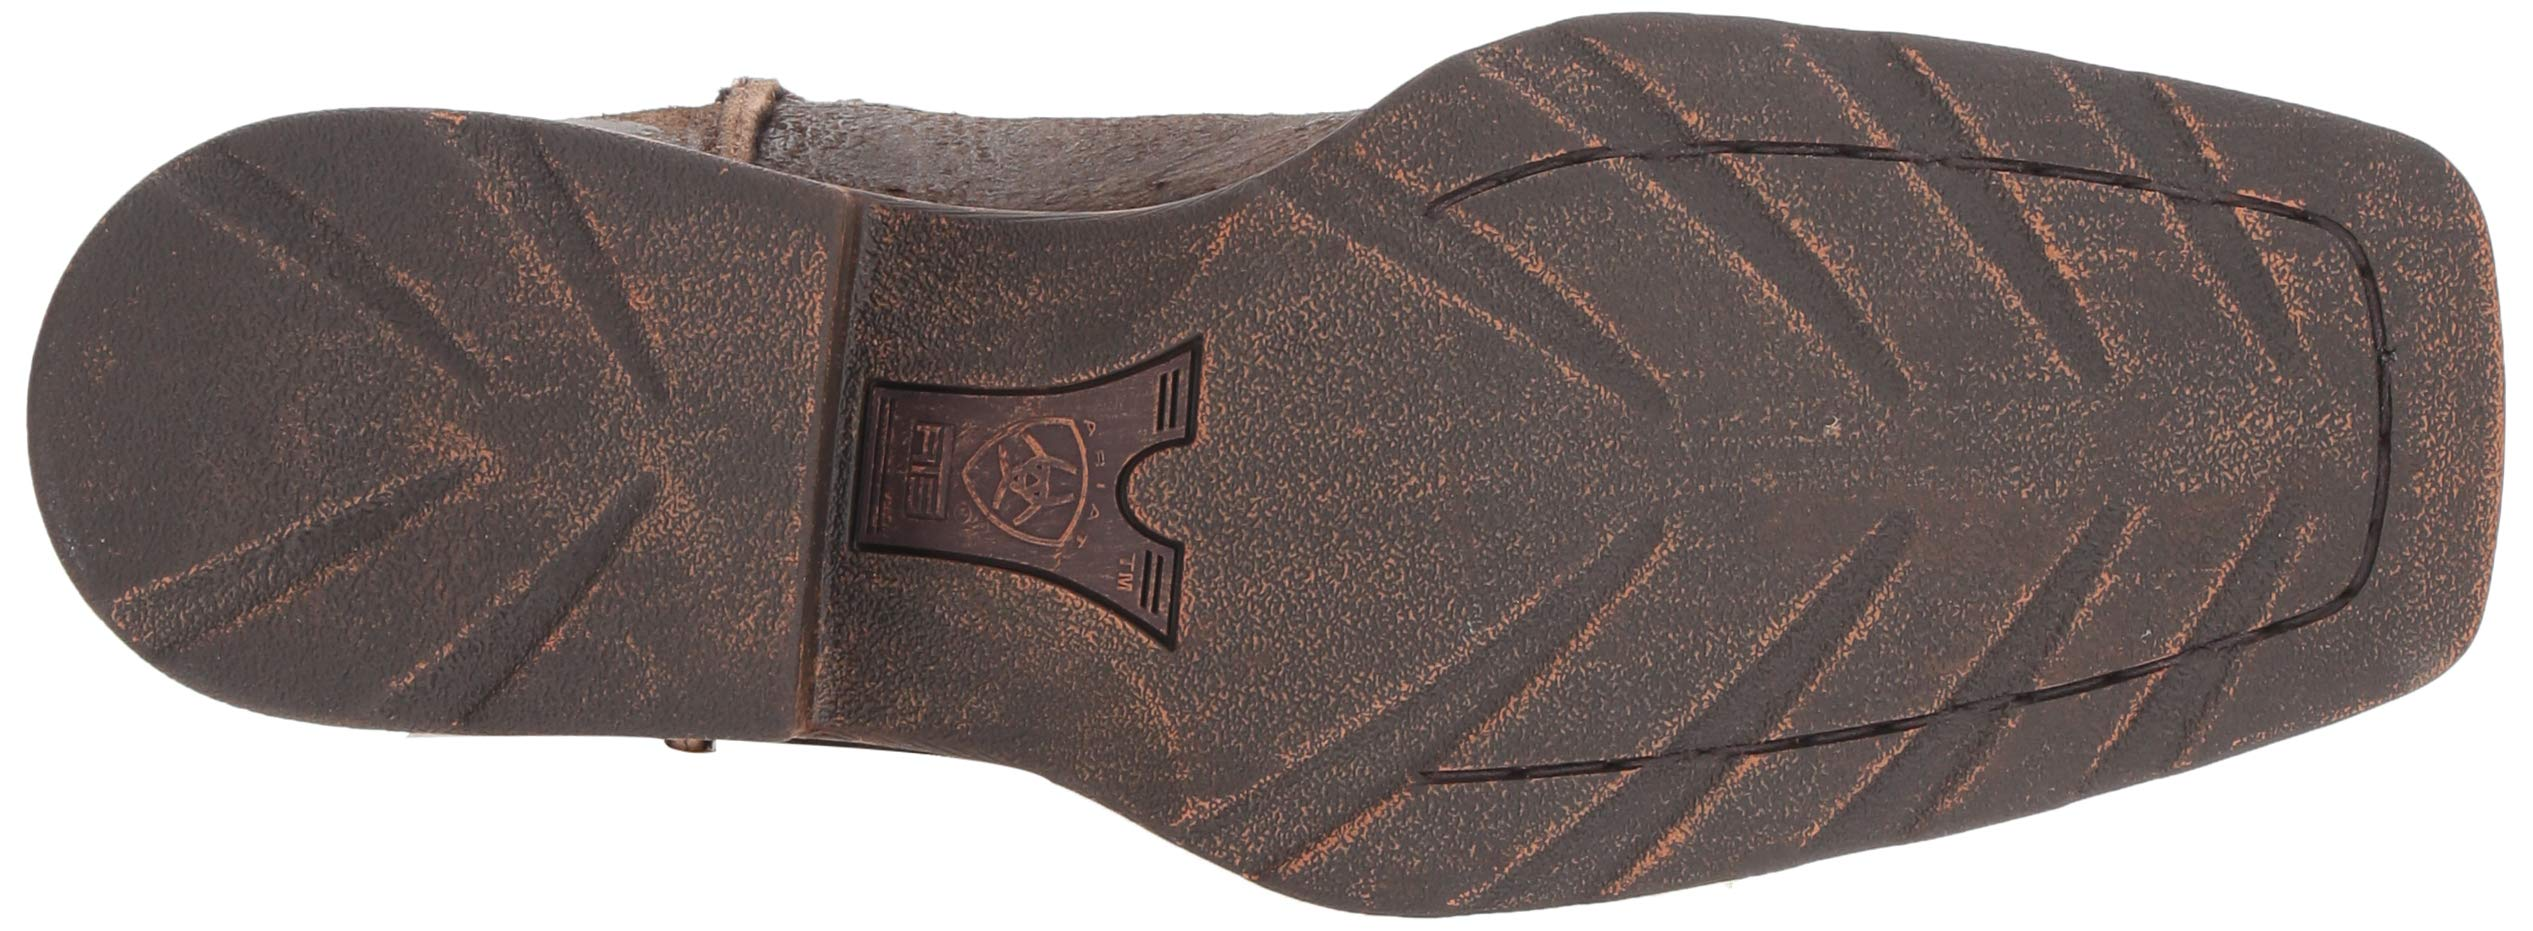 Ariat Men's Rambler Western Boot, Antiqued Grey, 13 2E US by ARIAT (Image #3)